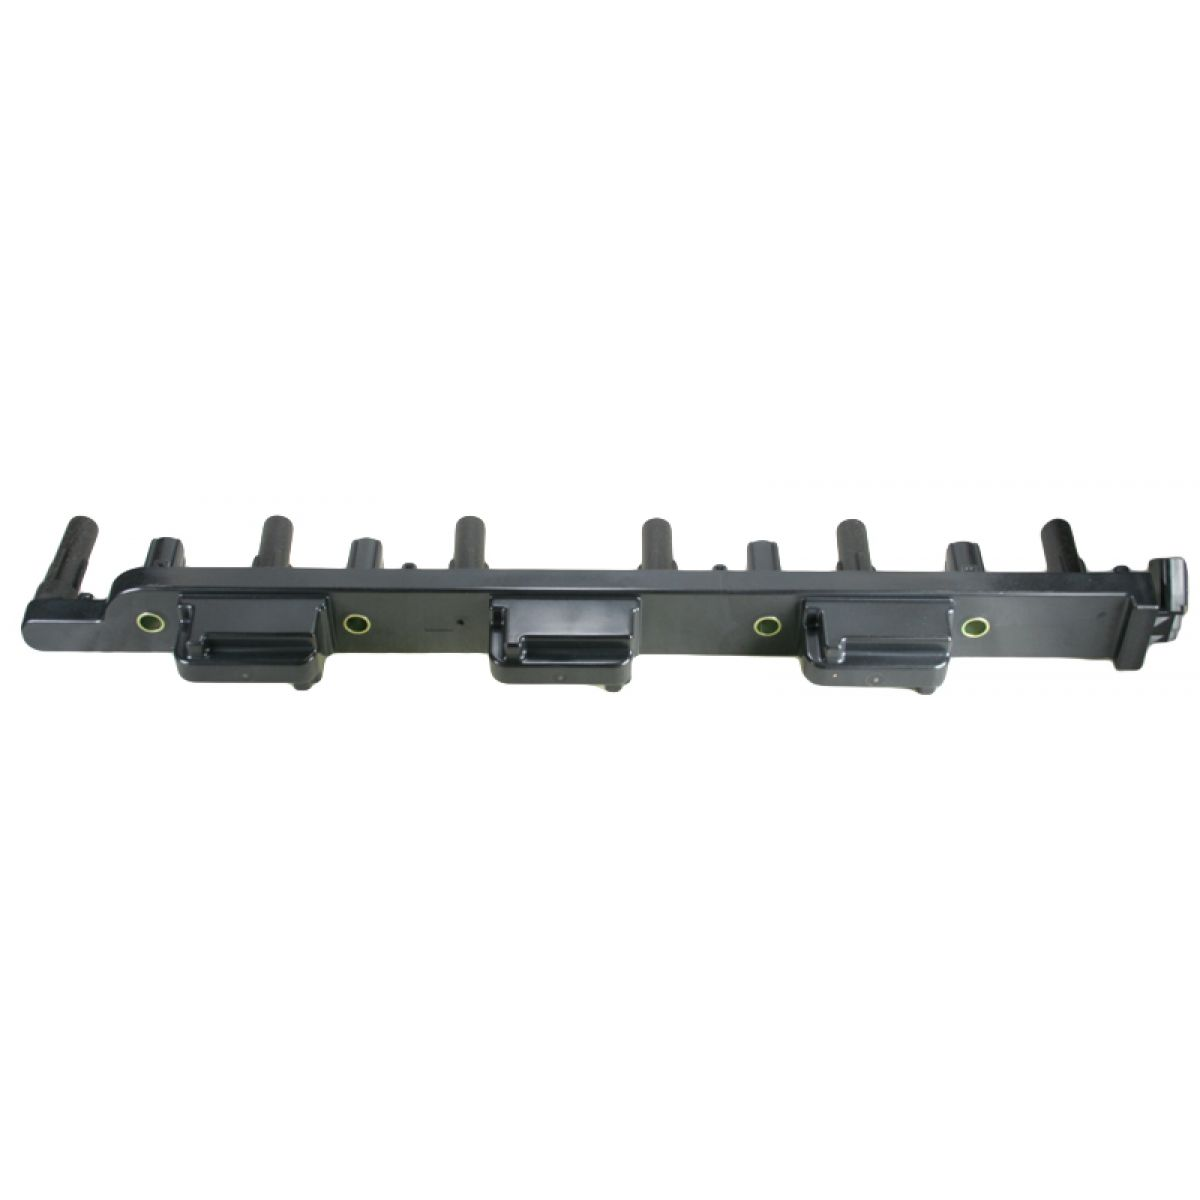 For Jeep Wrangler 2000 2006 Replace 2a34 Remanufactured: Ignition Coil Pack New For Jeep Grand Cherokee Wrangler 4